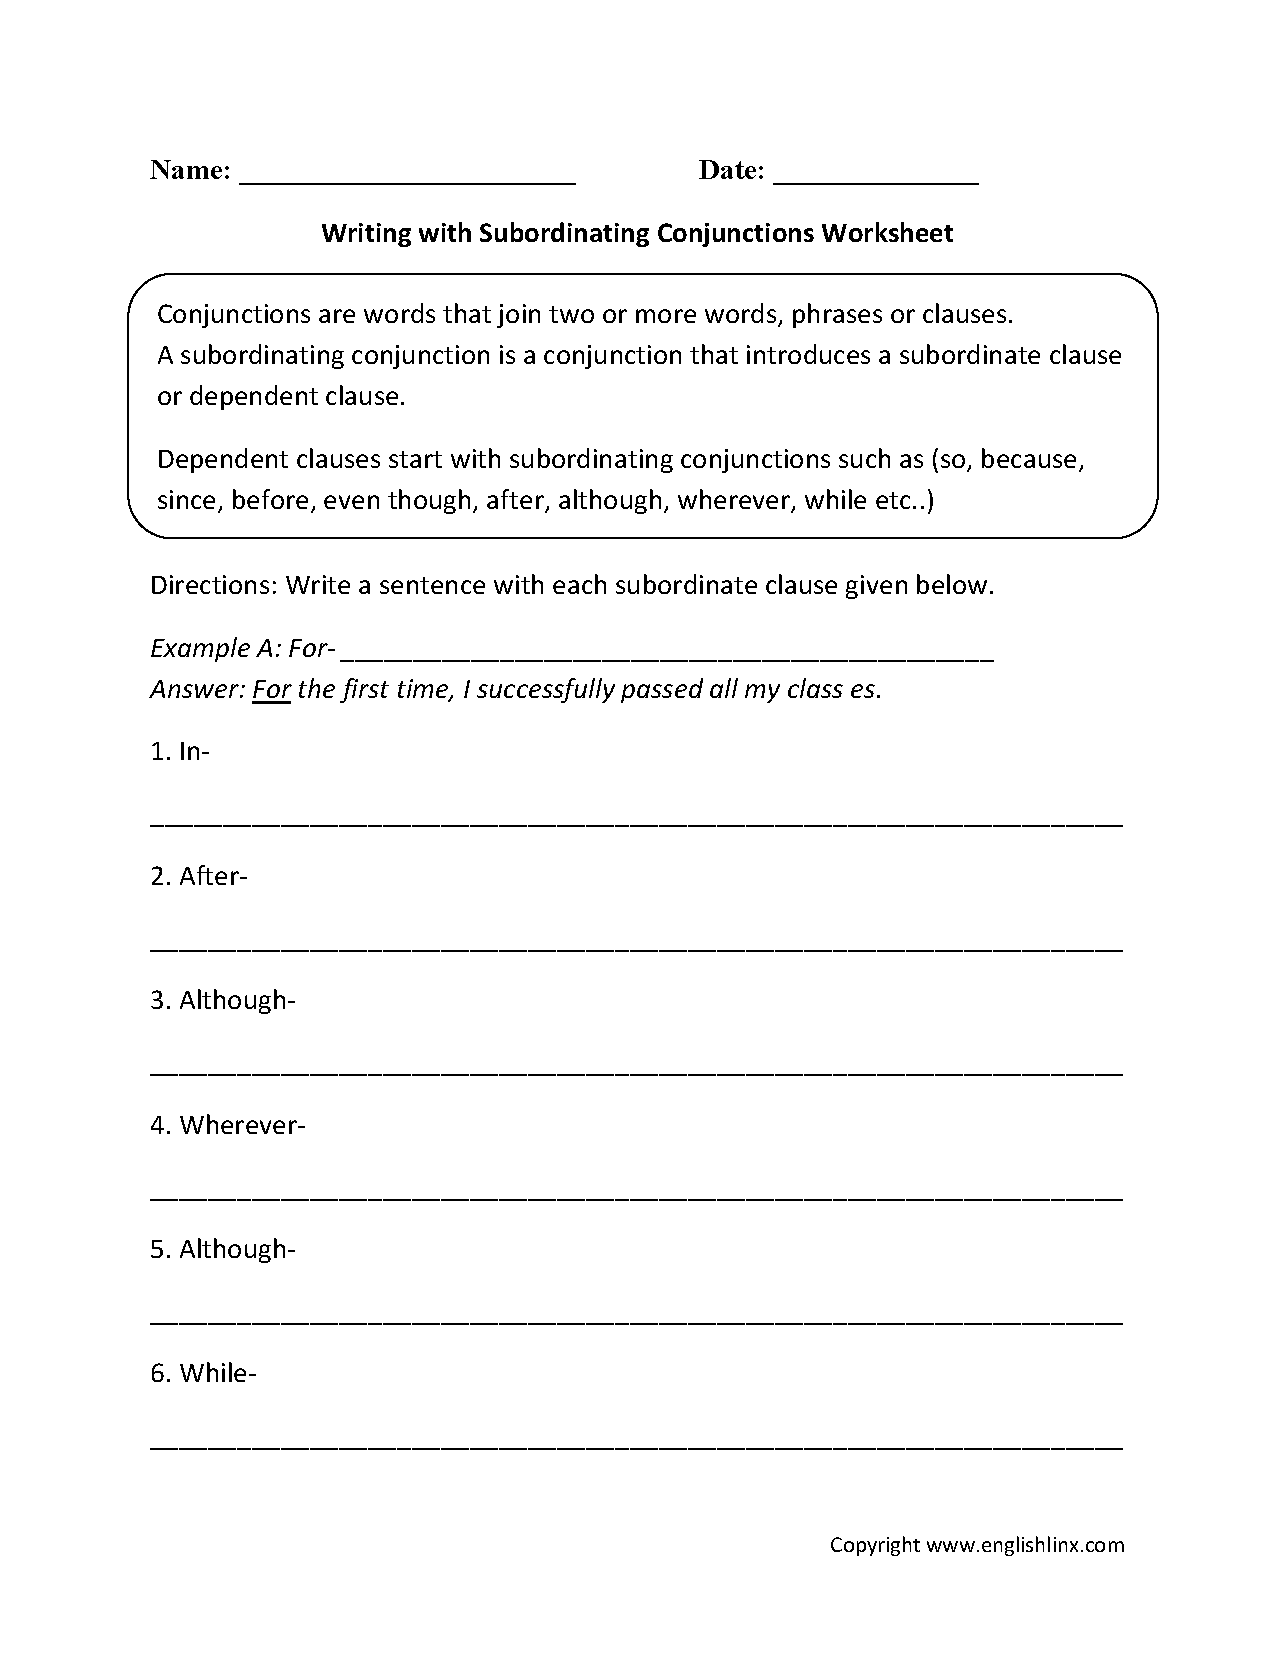 worksheet Conjunctive Adverbs Worksheet englishlinx com conjunctions worksheets subordinating worksheets